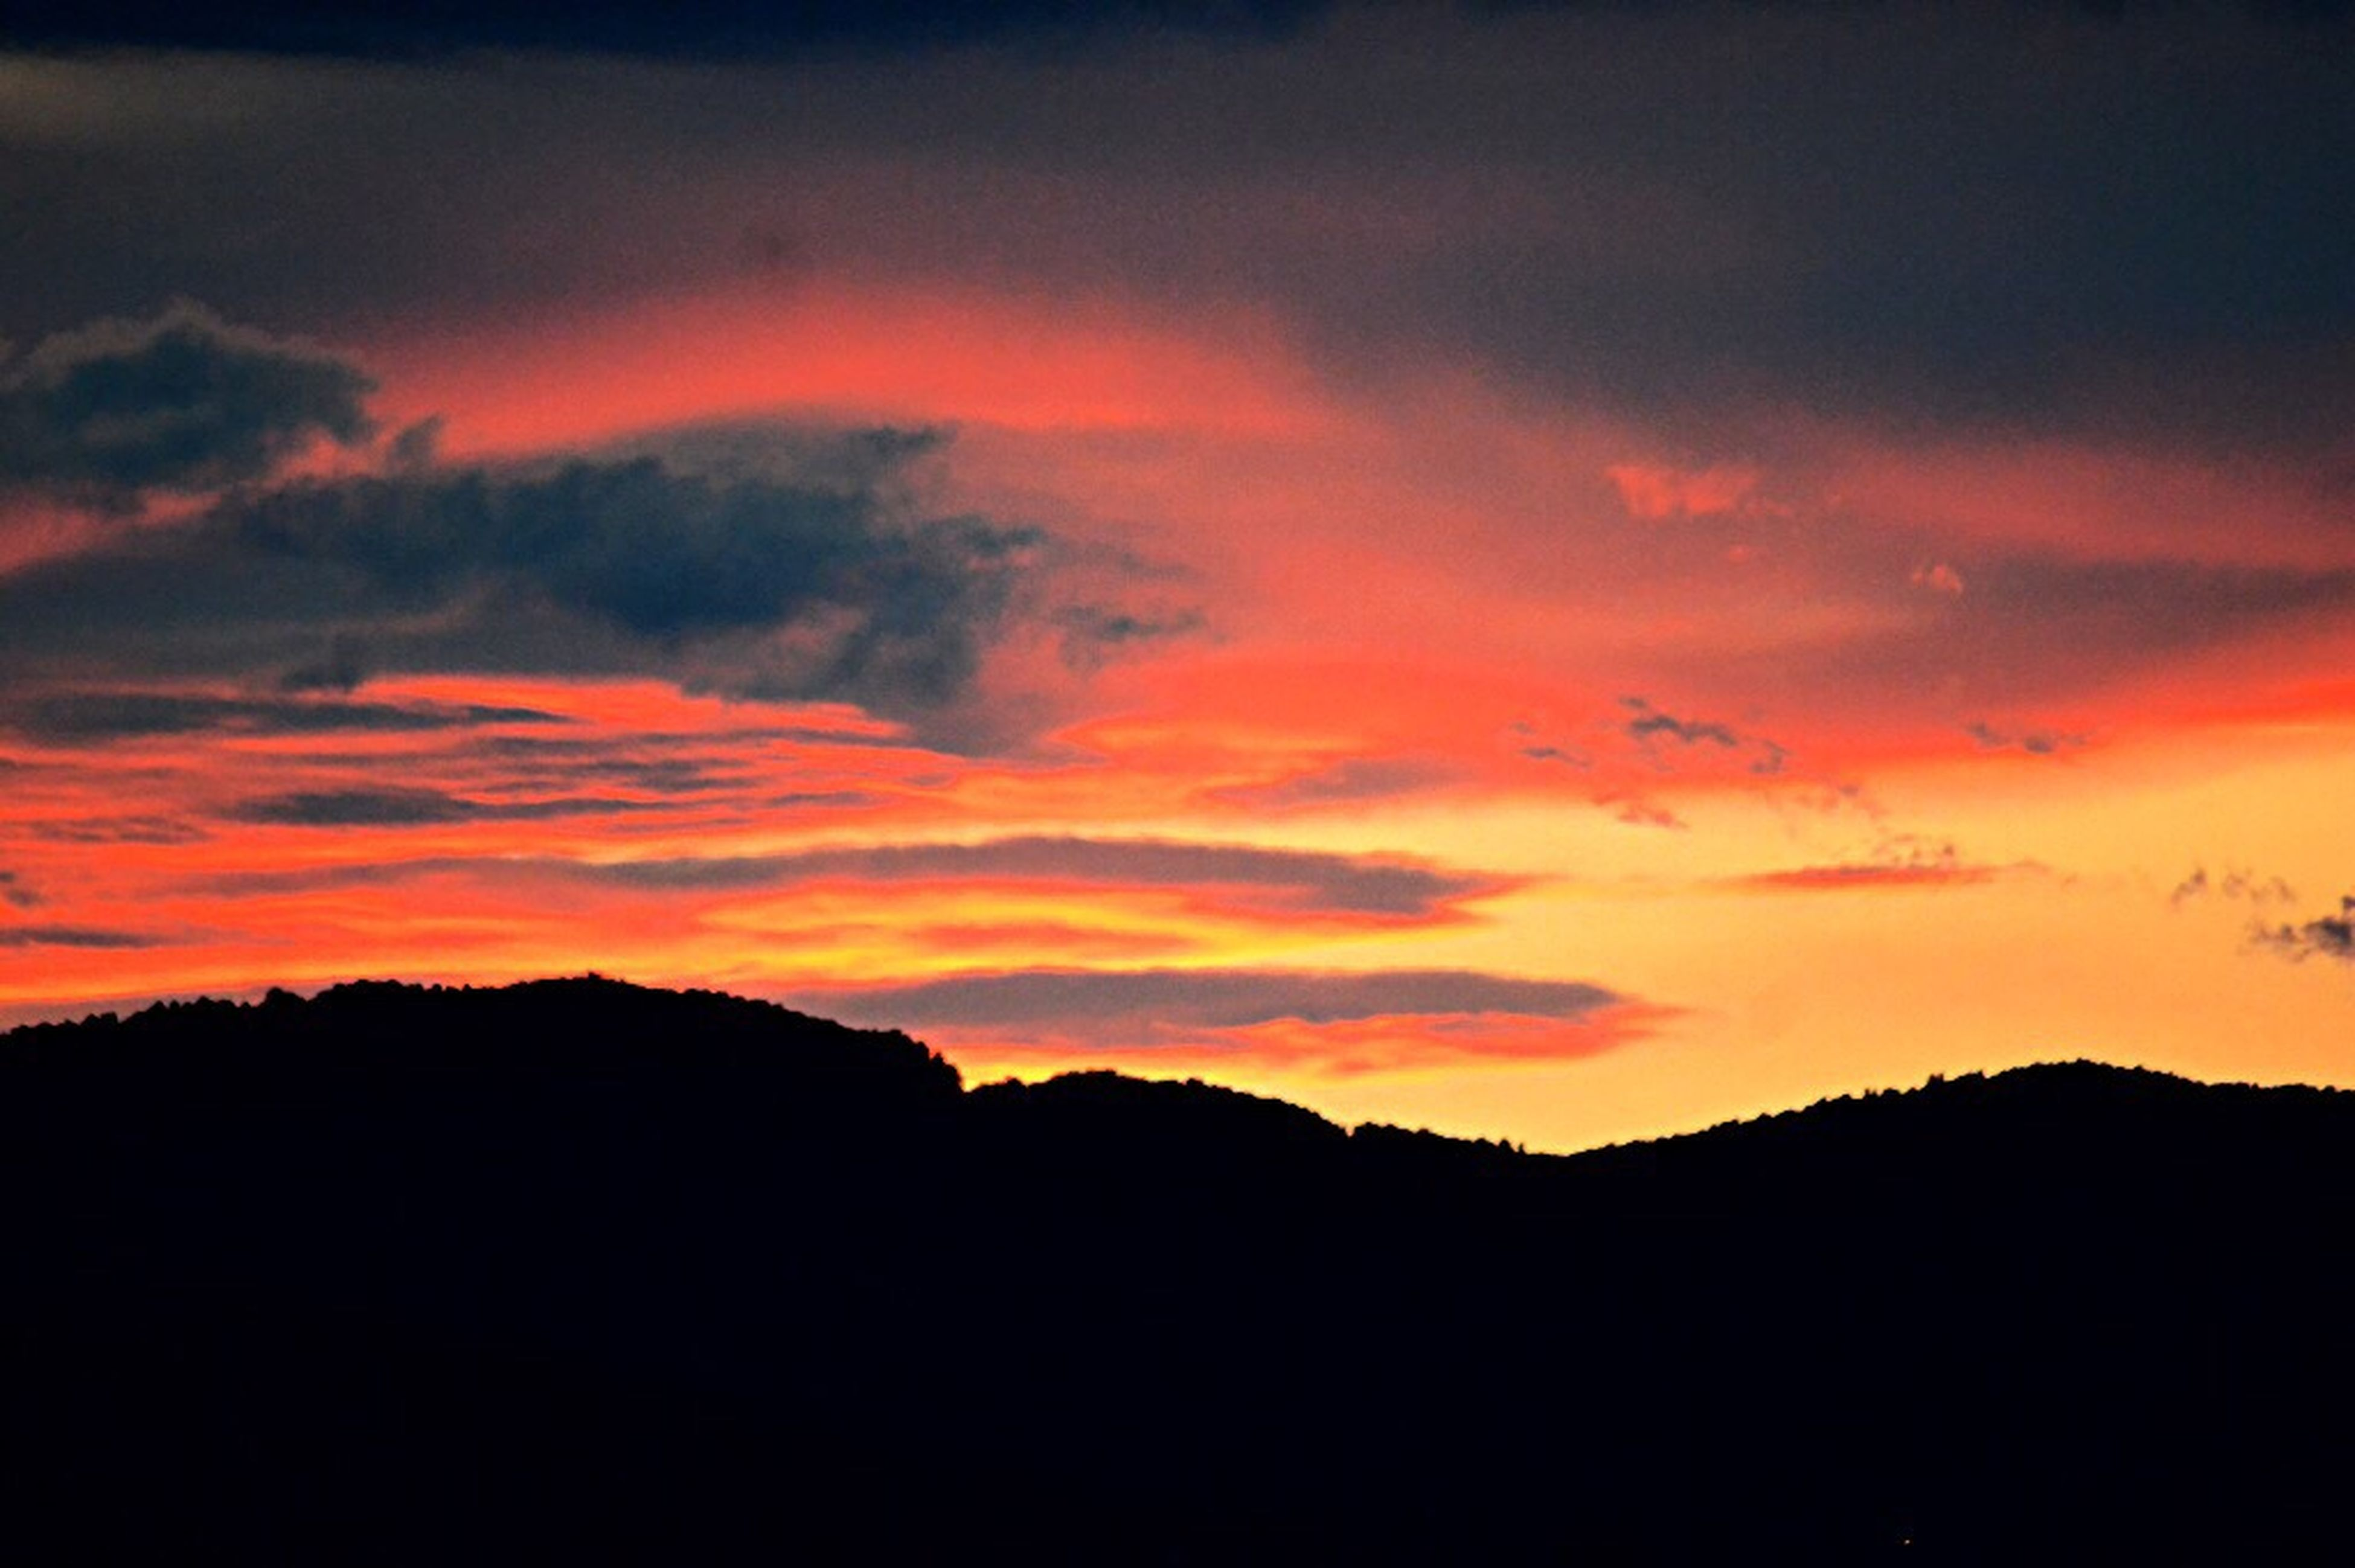 silhouette, sunset, beauty in nature, nature, scenics, dramatic sky, tranquil scene, sky, dark, no people, tranquility, outdoors, cloud - sky, backgrounds, tree, day